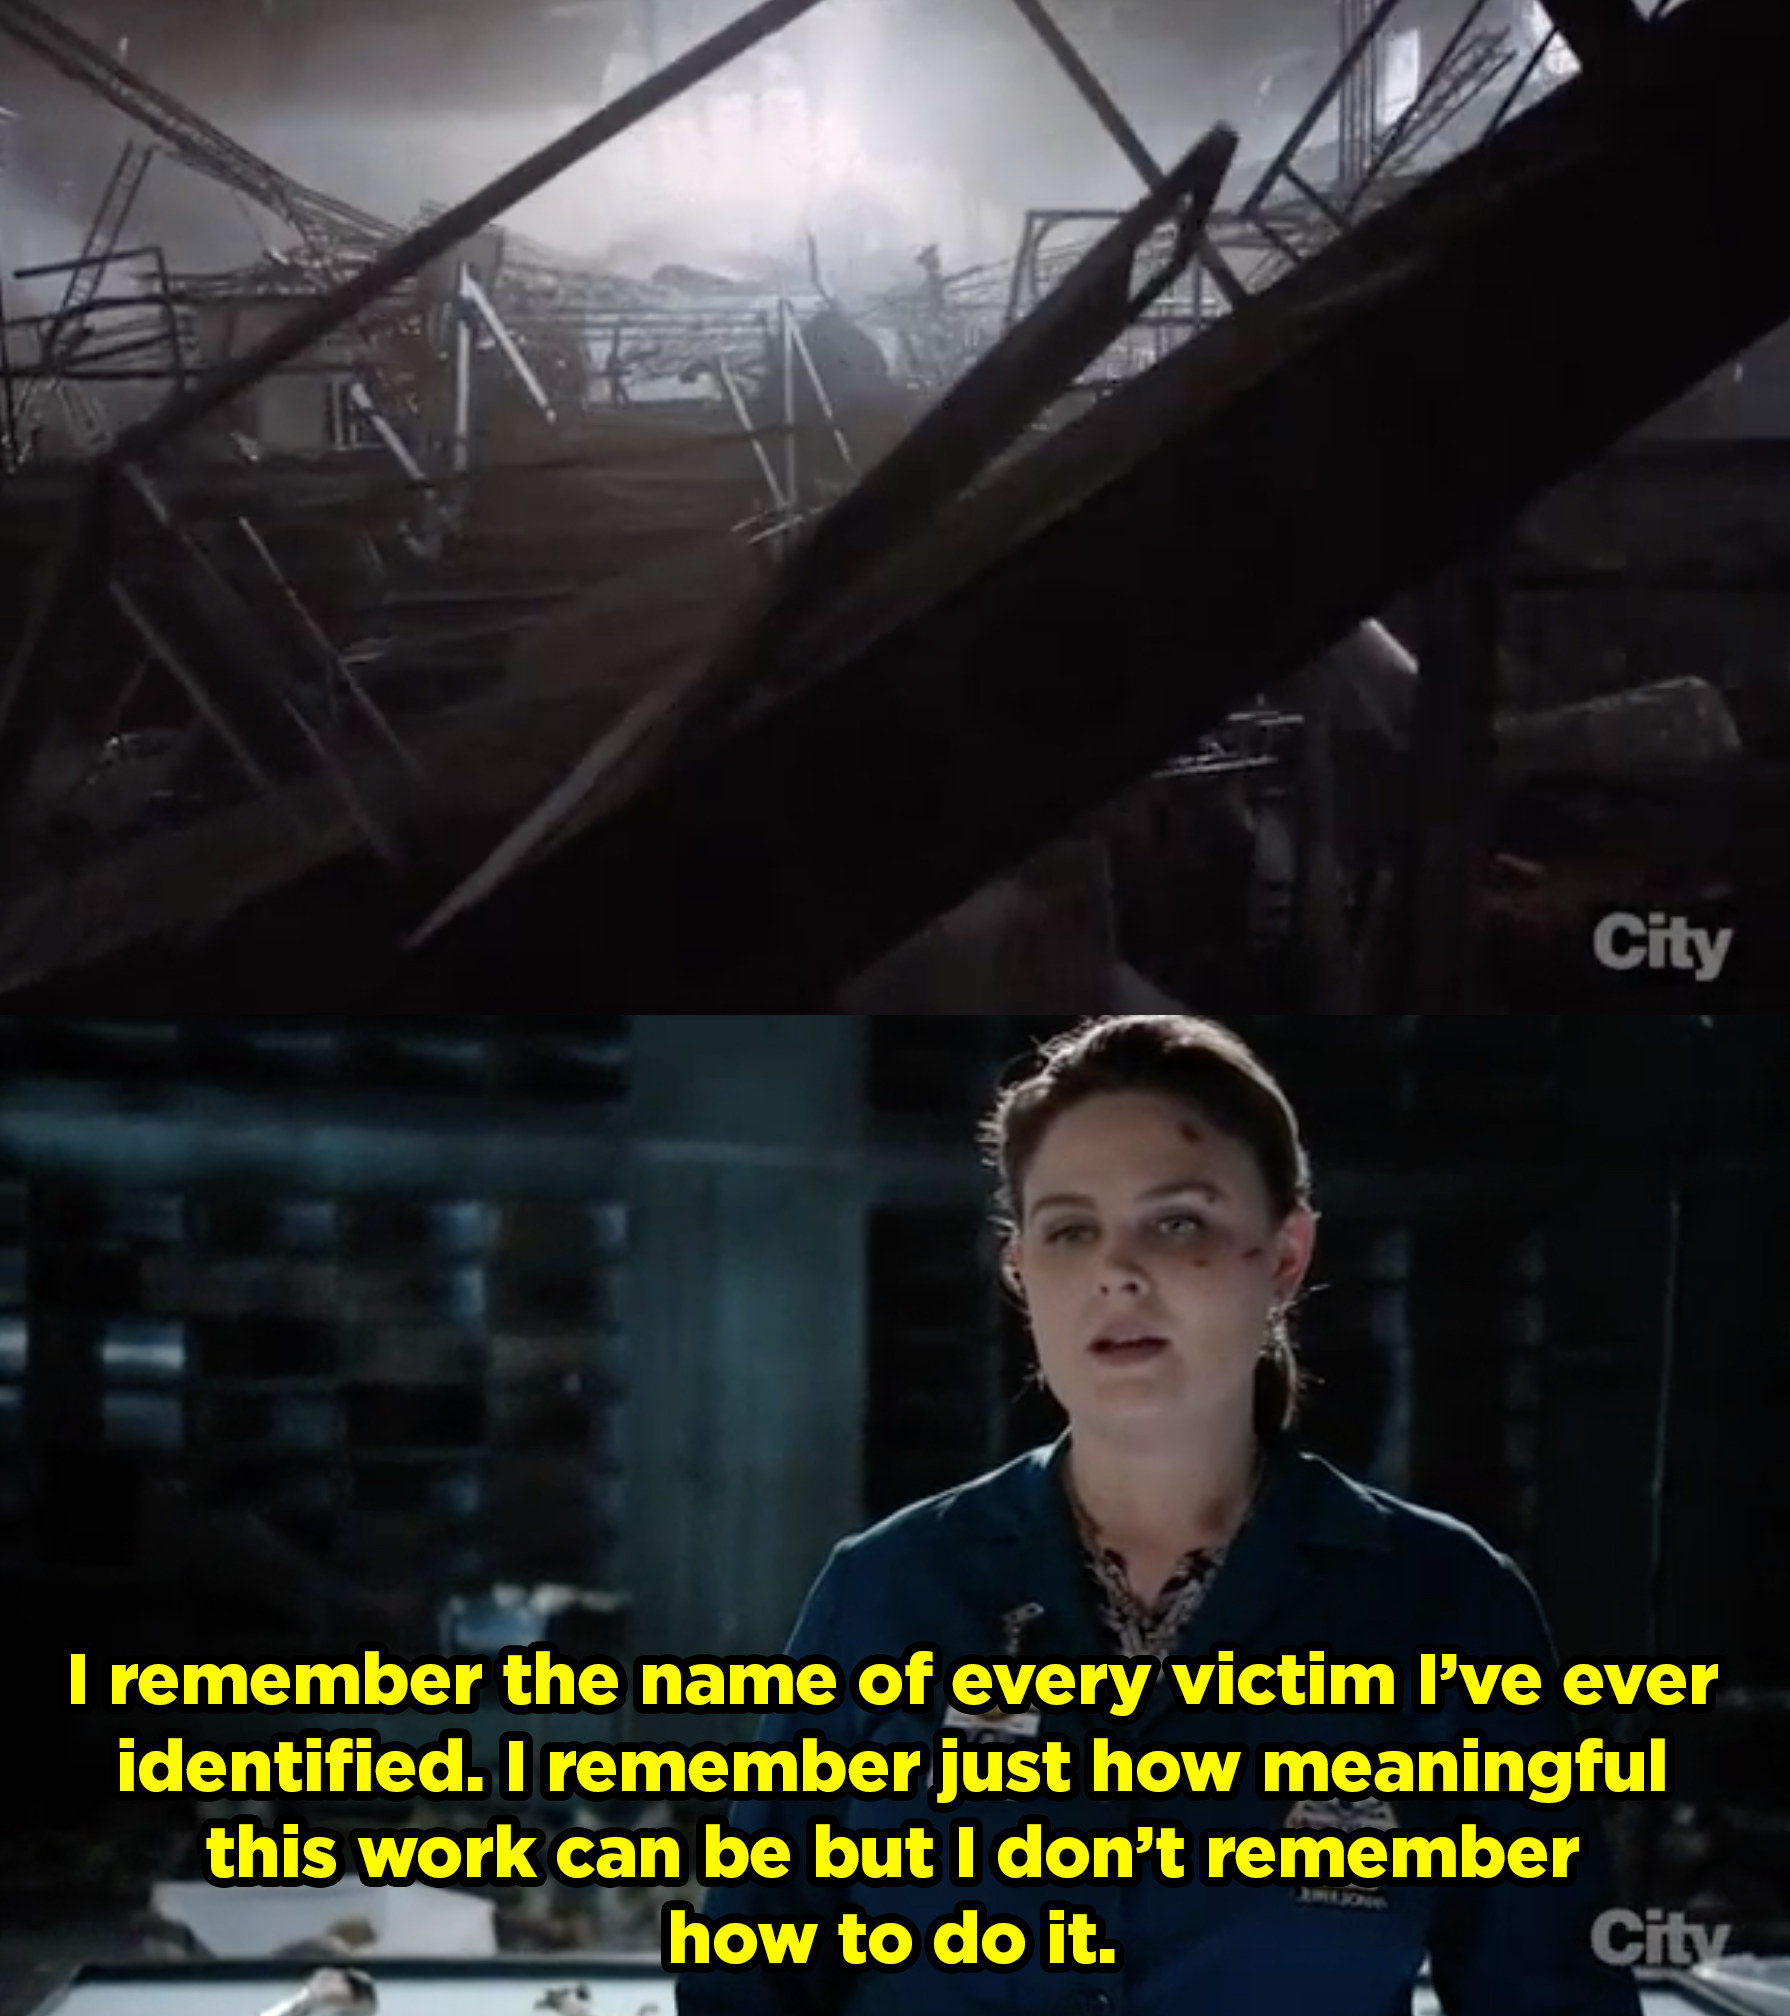 The lab explodes and Brennan talks about remembering all the victims she's identified, and how important the job is, she just can't remember how to do it.